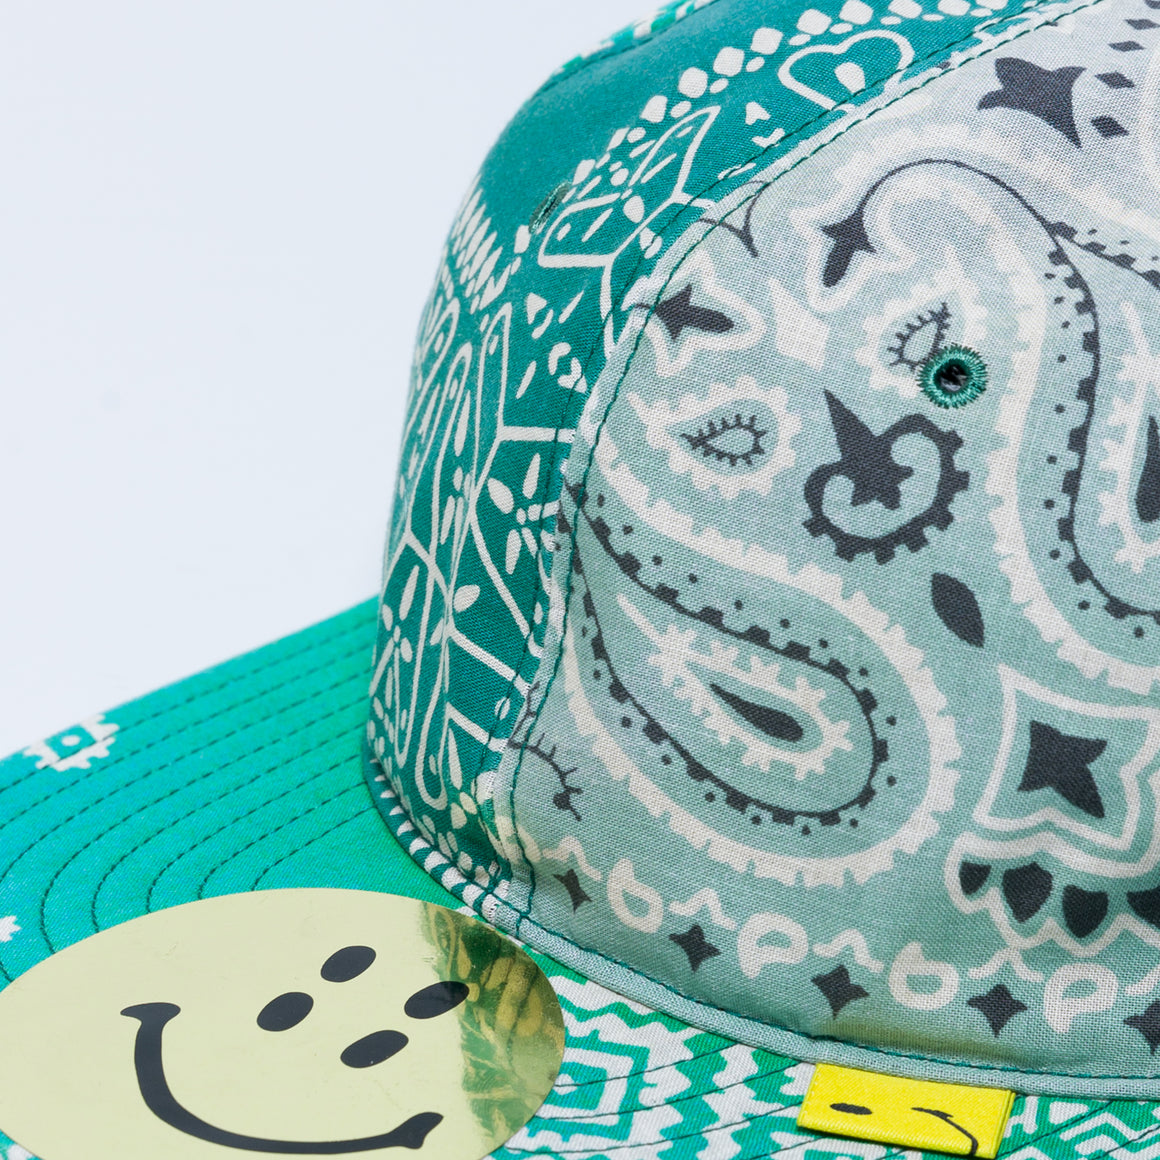 Cotton Bandana Patchwork Baseball Cap - Green - Up There